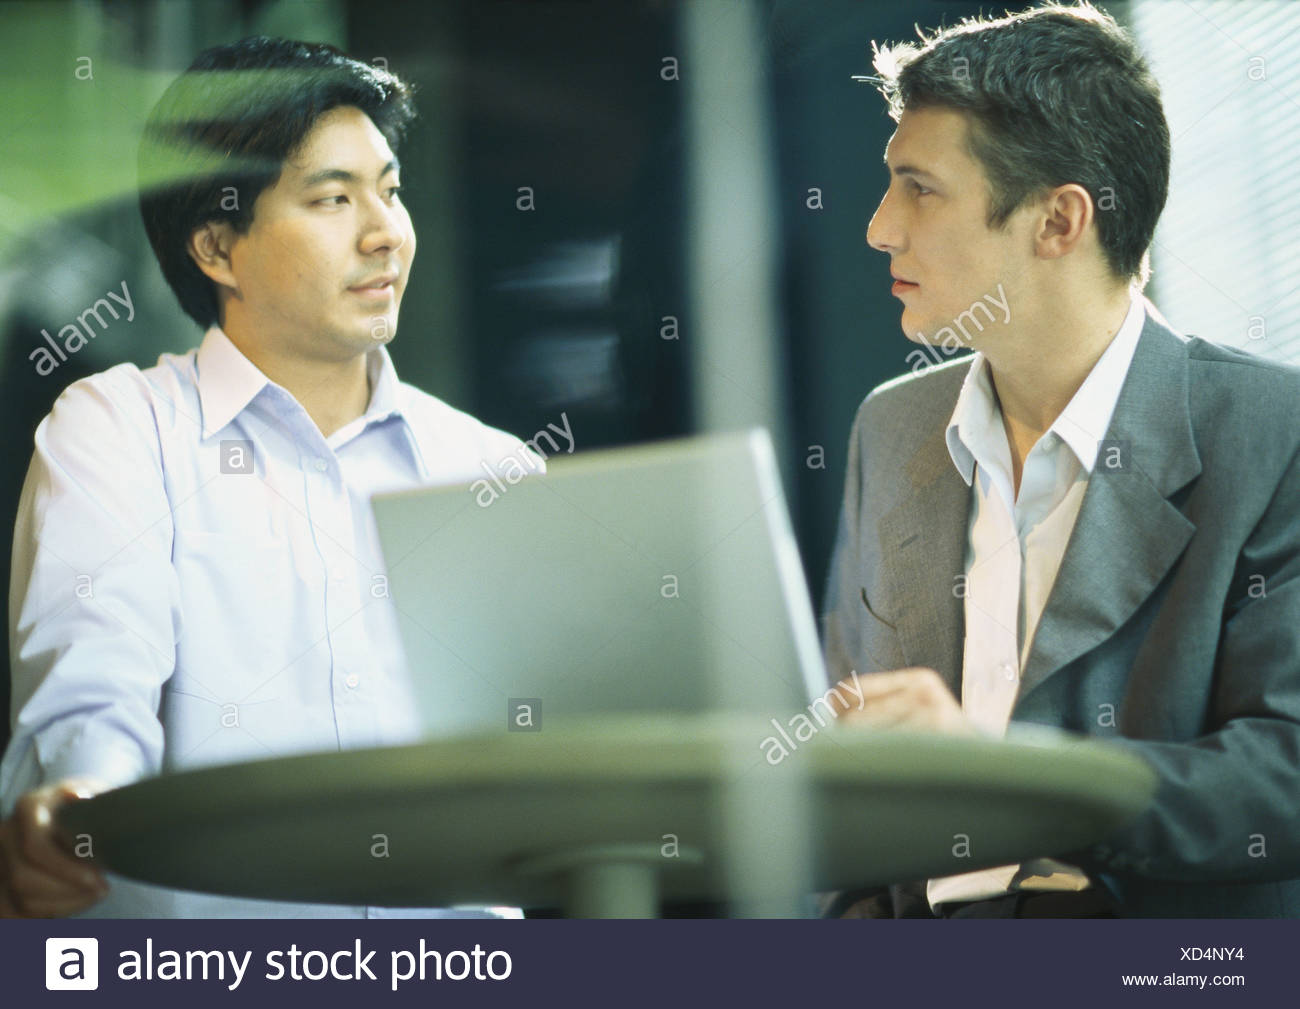 Two businessman staring at each other - Stock Image